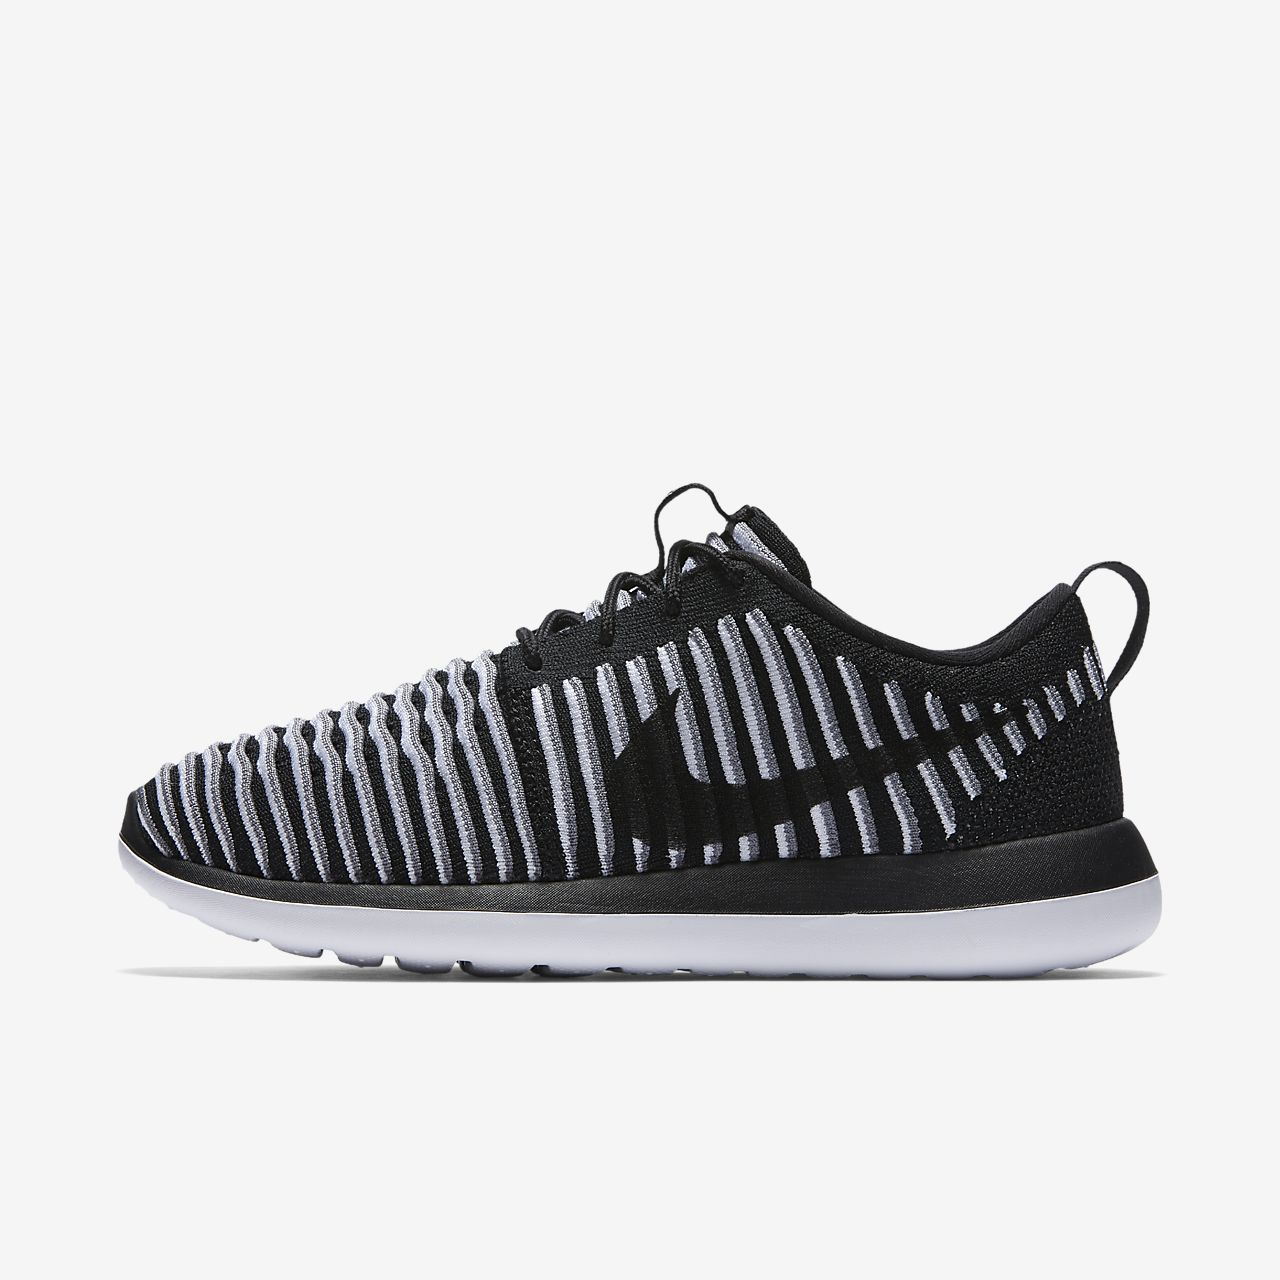 pretty nice 8d2e8 e6173 ... run flyknit mens running shoes gray 63qxhpi5 782d6 2afaa  low cost nike  roshe flyknit femme gow xuf3 c73b6 61a8f